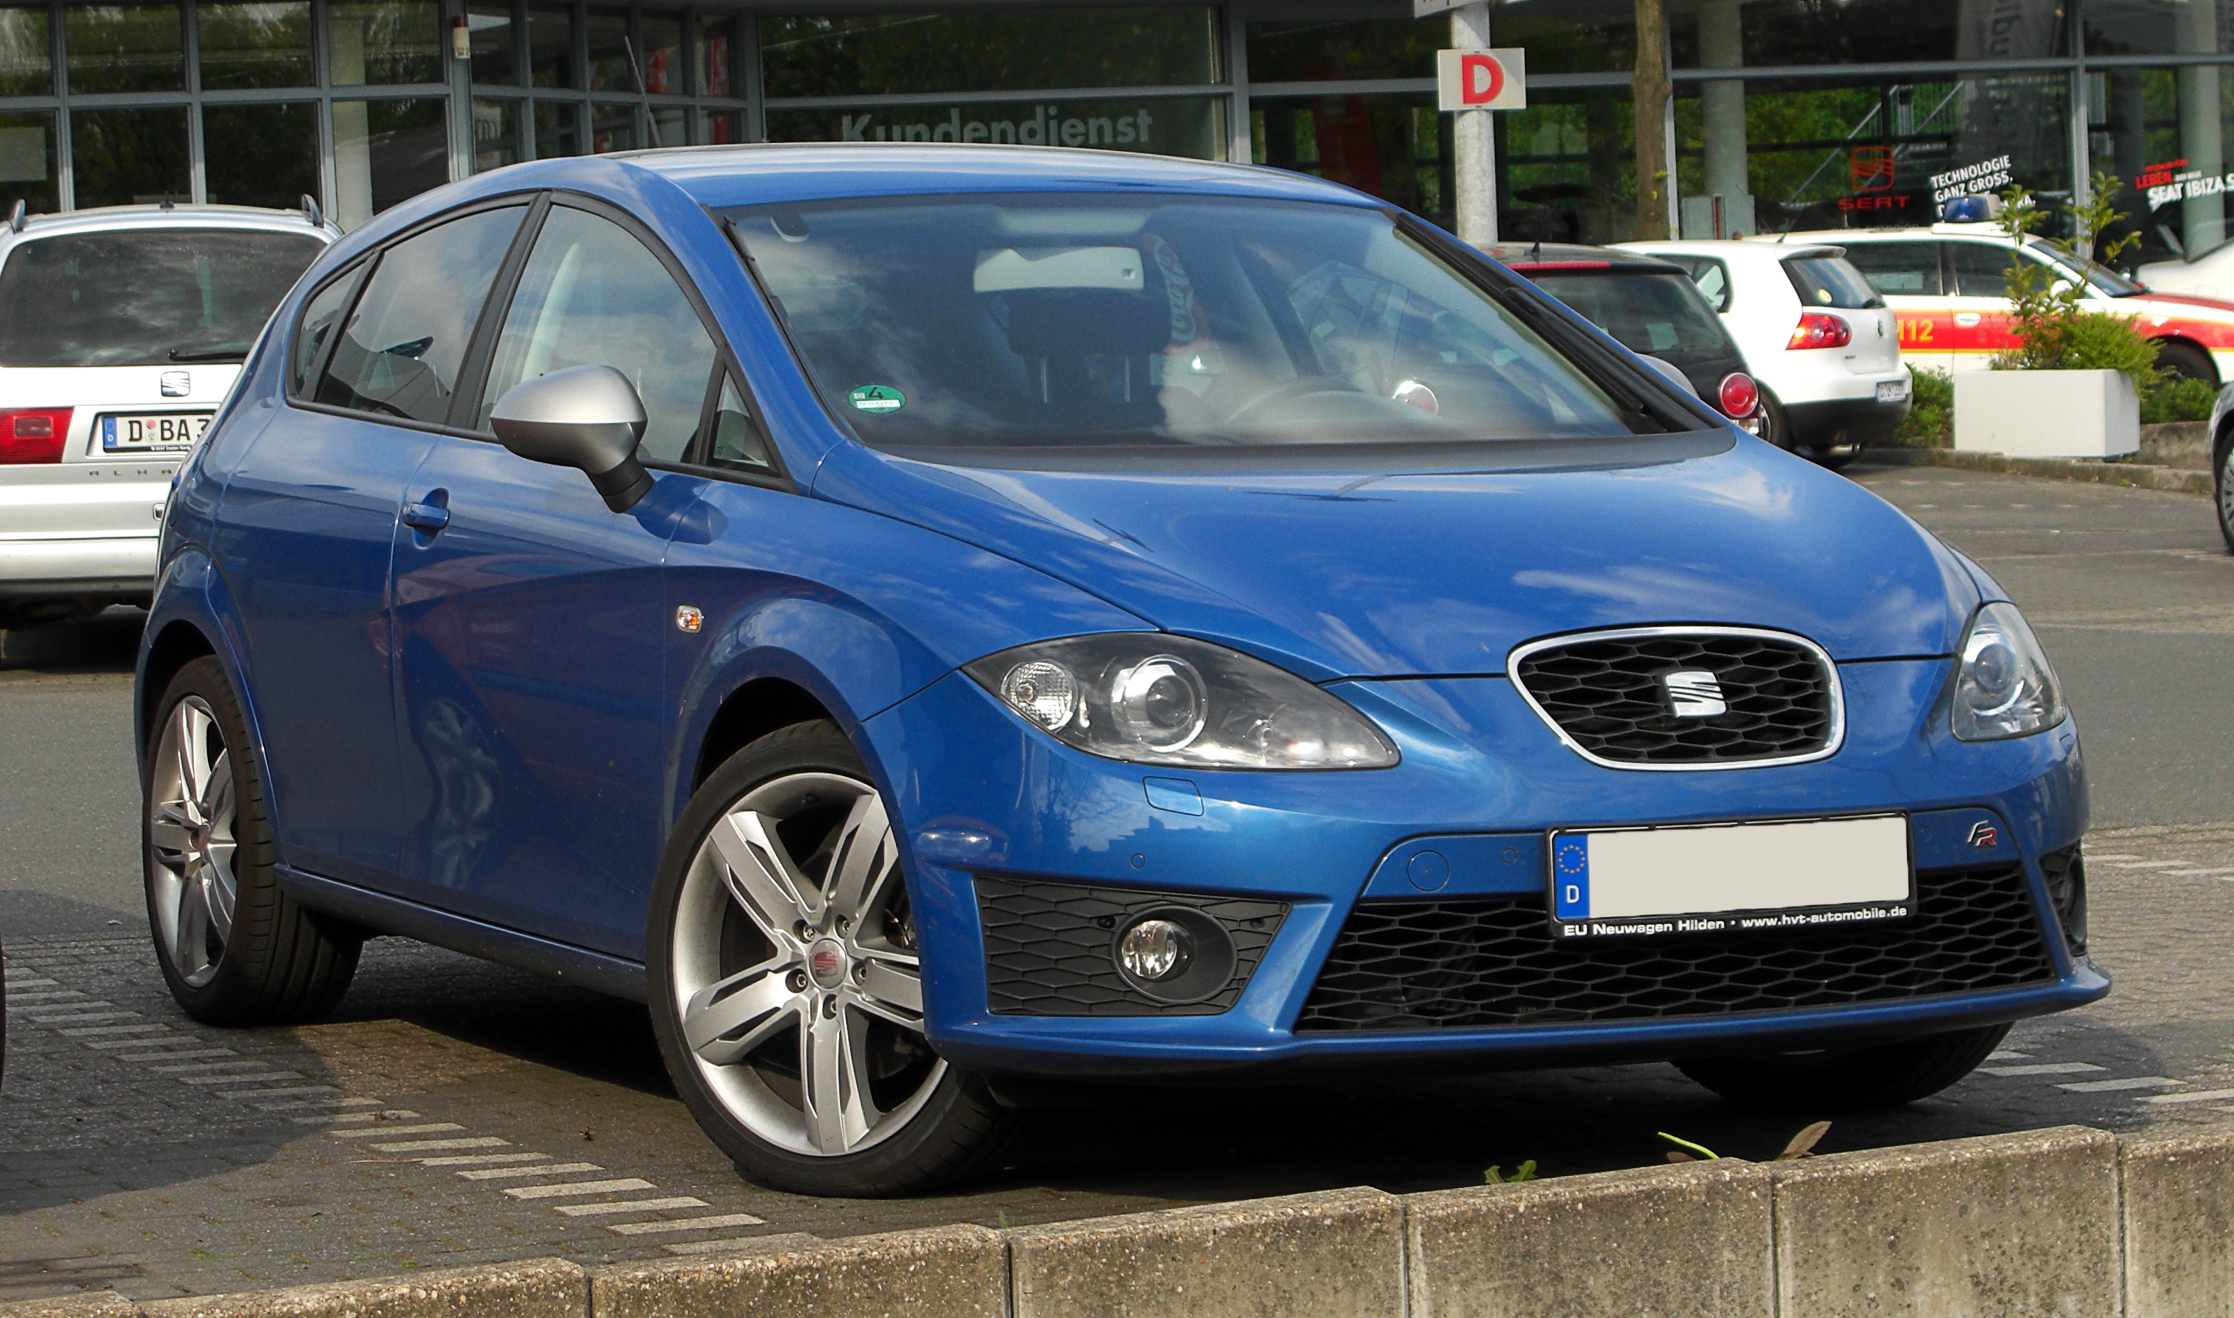 plik seat leon fr 1p facelift frontansicht 16 april 2011 d wikipedia. Black Bedroom Furniture Sets. Home Design Ideas